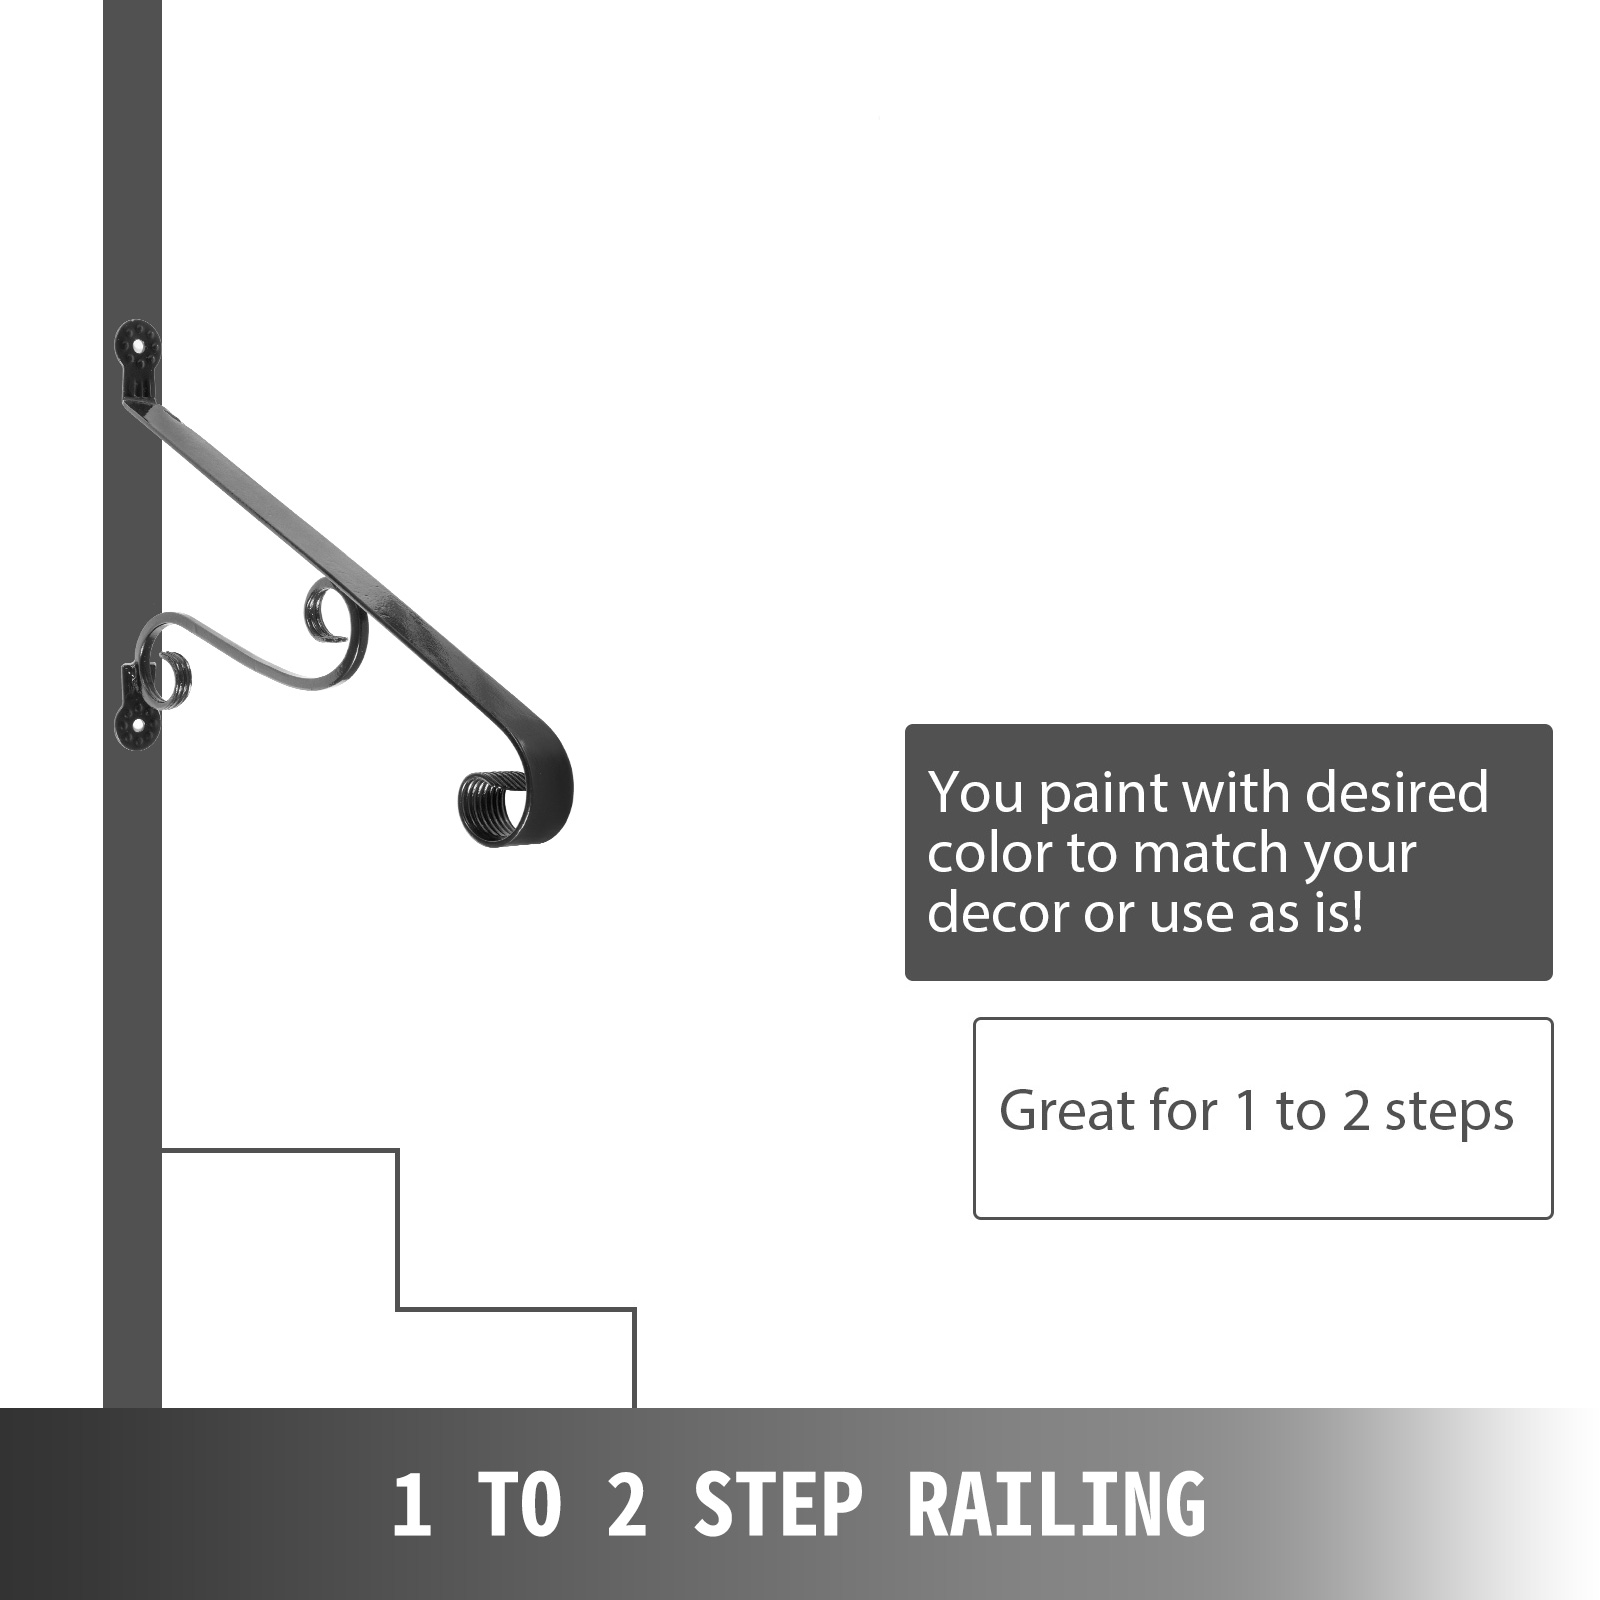 Handrails-for-Outdoor-Step-Wrought-Iron-Handrail-20-034-Length-Porch-Deck-Railing thumbnail 135